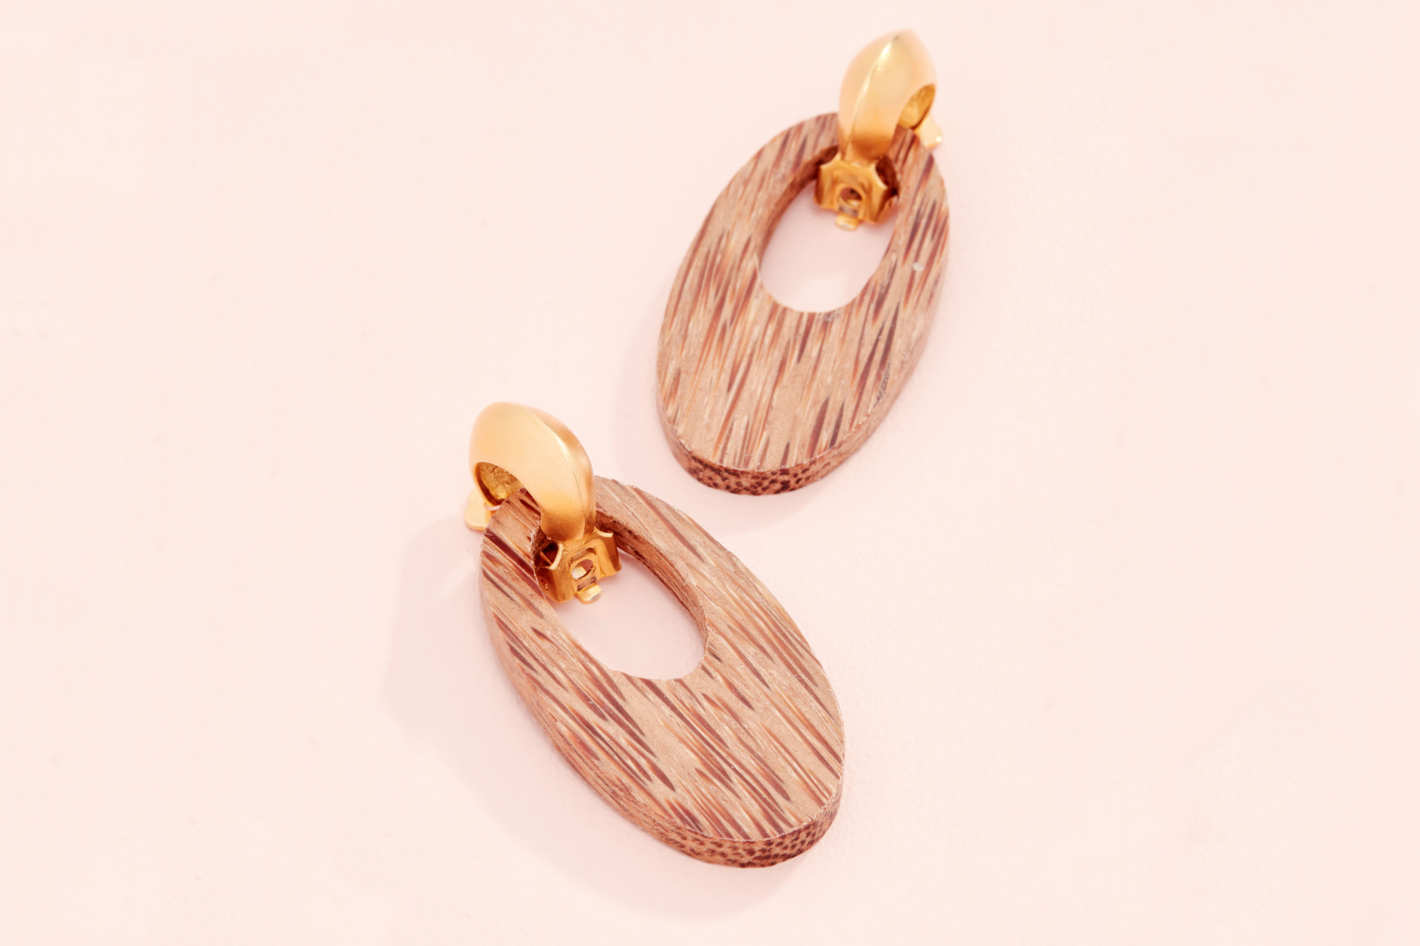 Kenneth Jay Lane Gold and Wood Drop Earrings